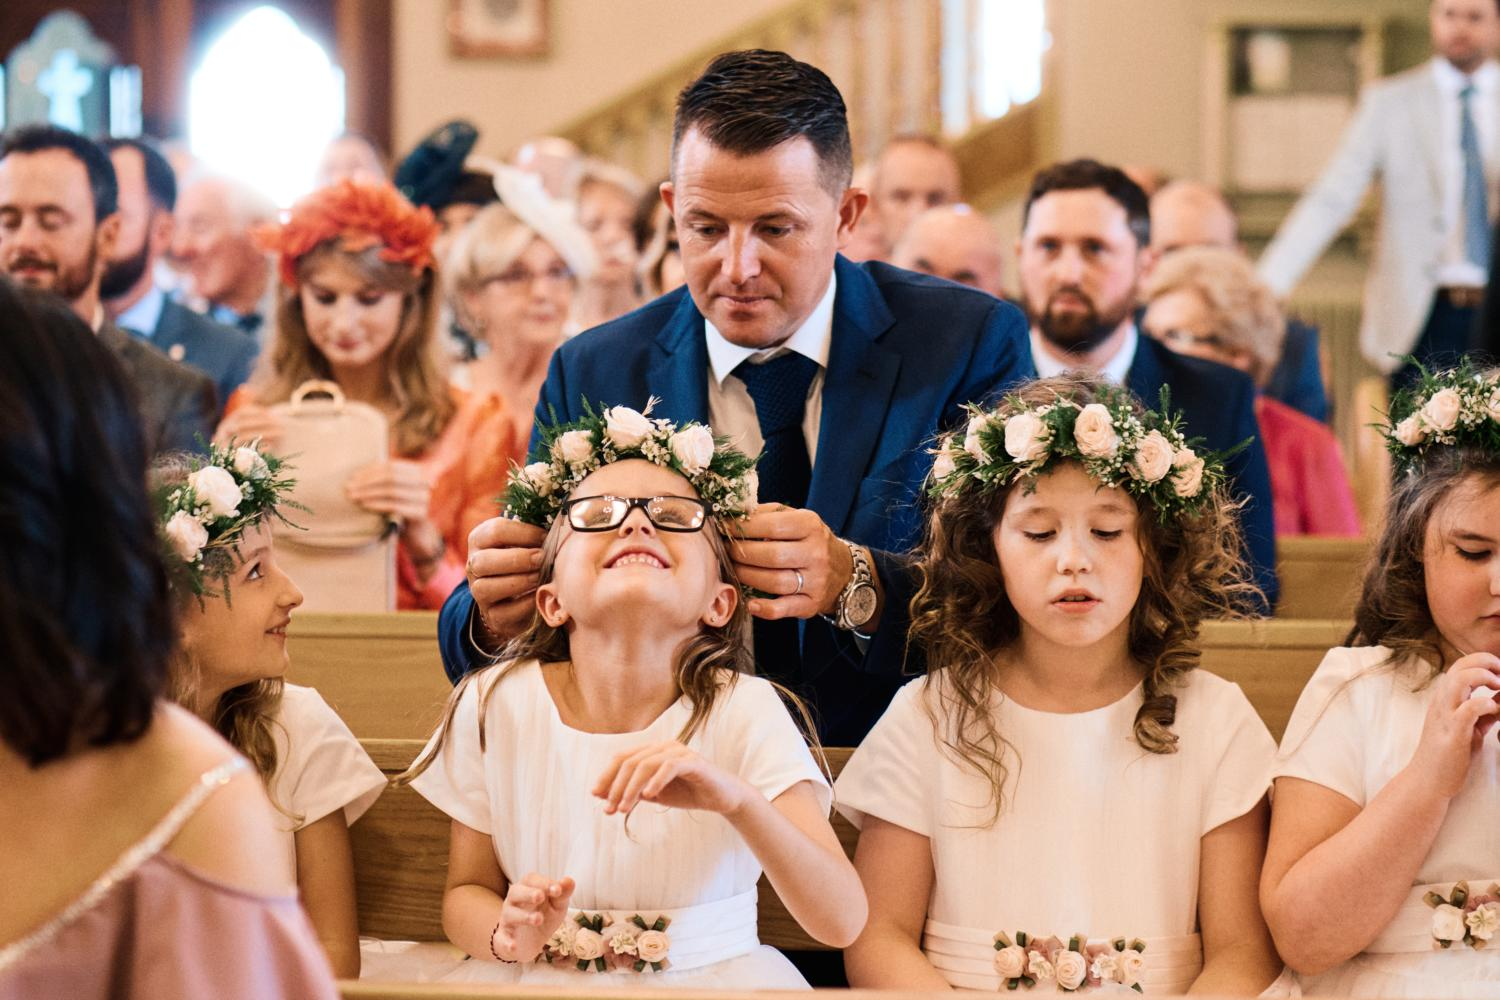 A father helps fix a child's floral head piece